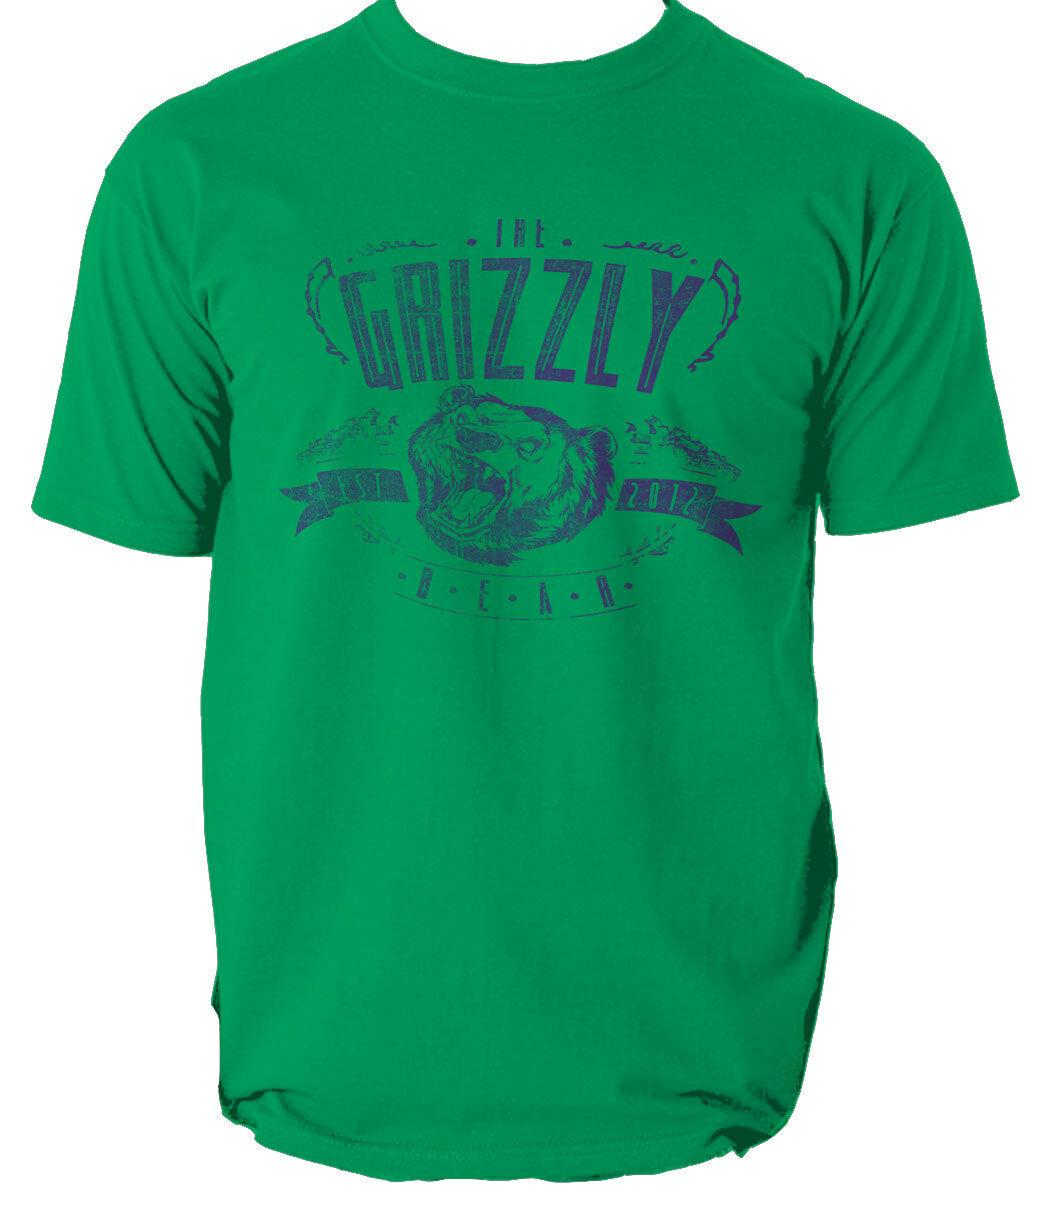 ec606119 The Grizzly Bear T Shirt Camping Mountanis Camp S 3XL Men Women Unisex  Fashion Tshirt Funny Cool Top Tee Black Buy Designer Shirts Great Tees From  ...